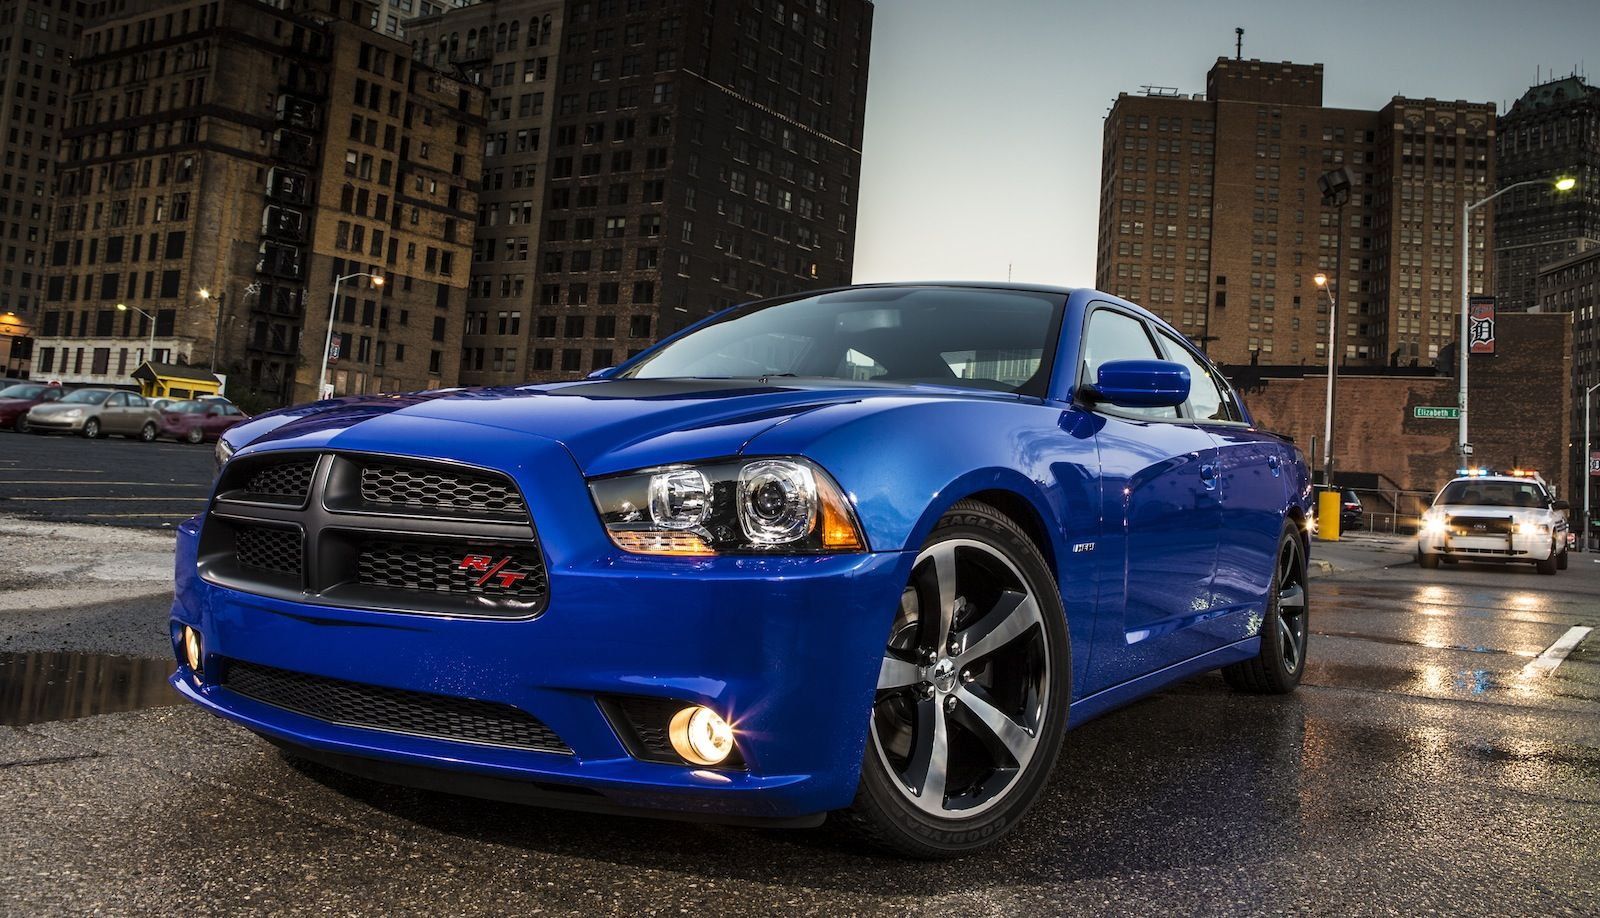 1000 ideas about 2014 dodge charger rt on pinterest dodge charger rt 2014 dodge charger and dodge charger sxt